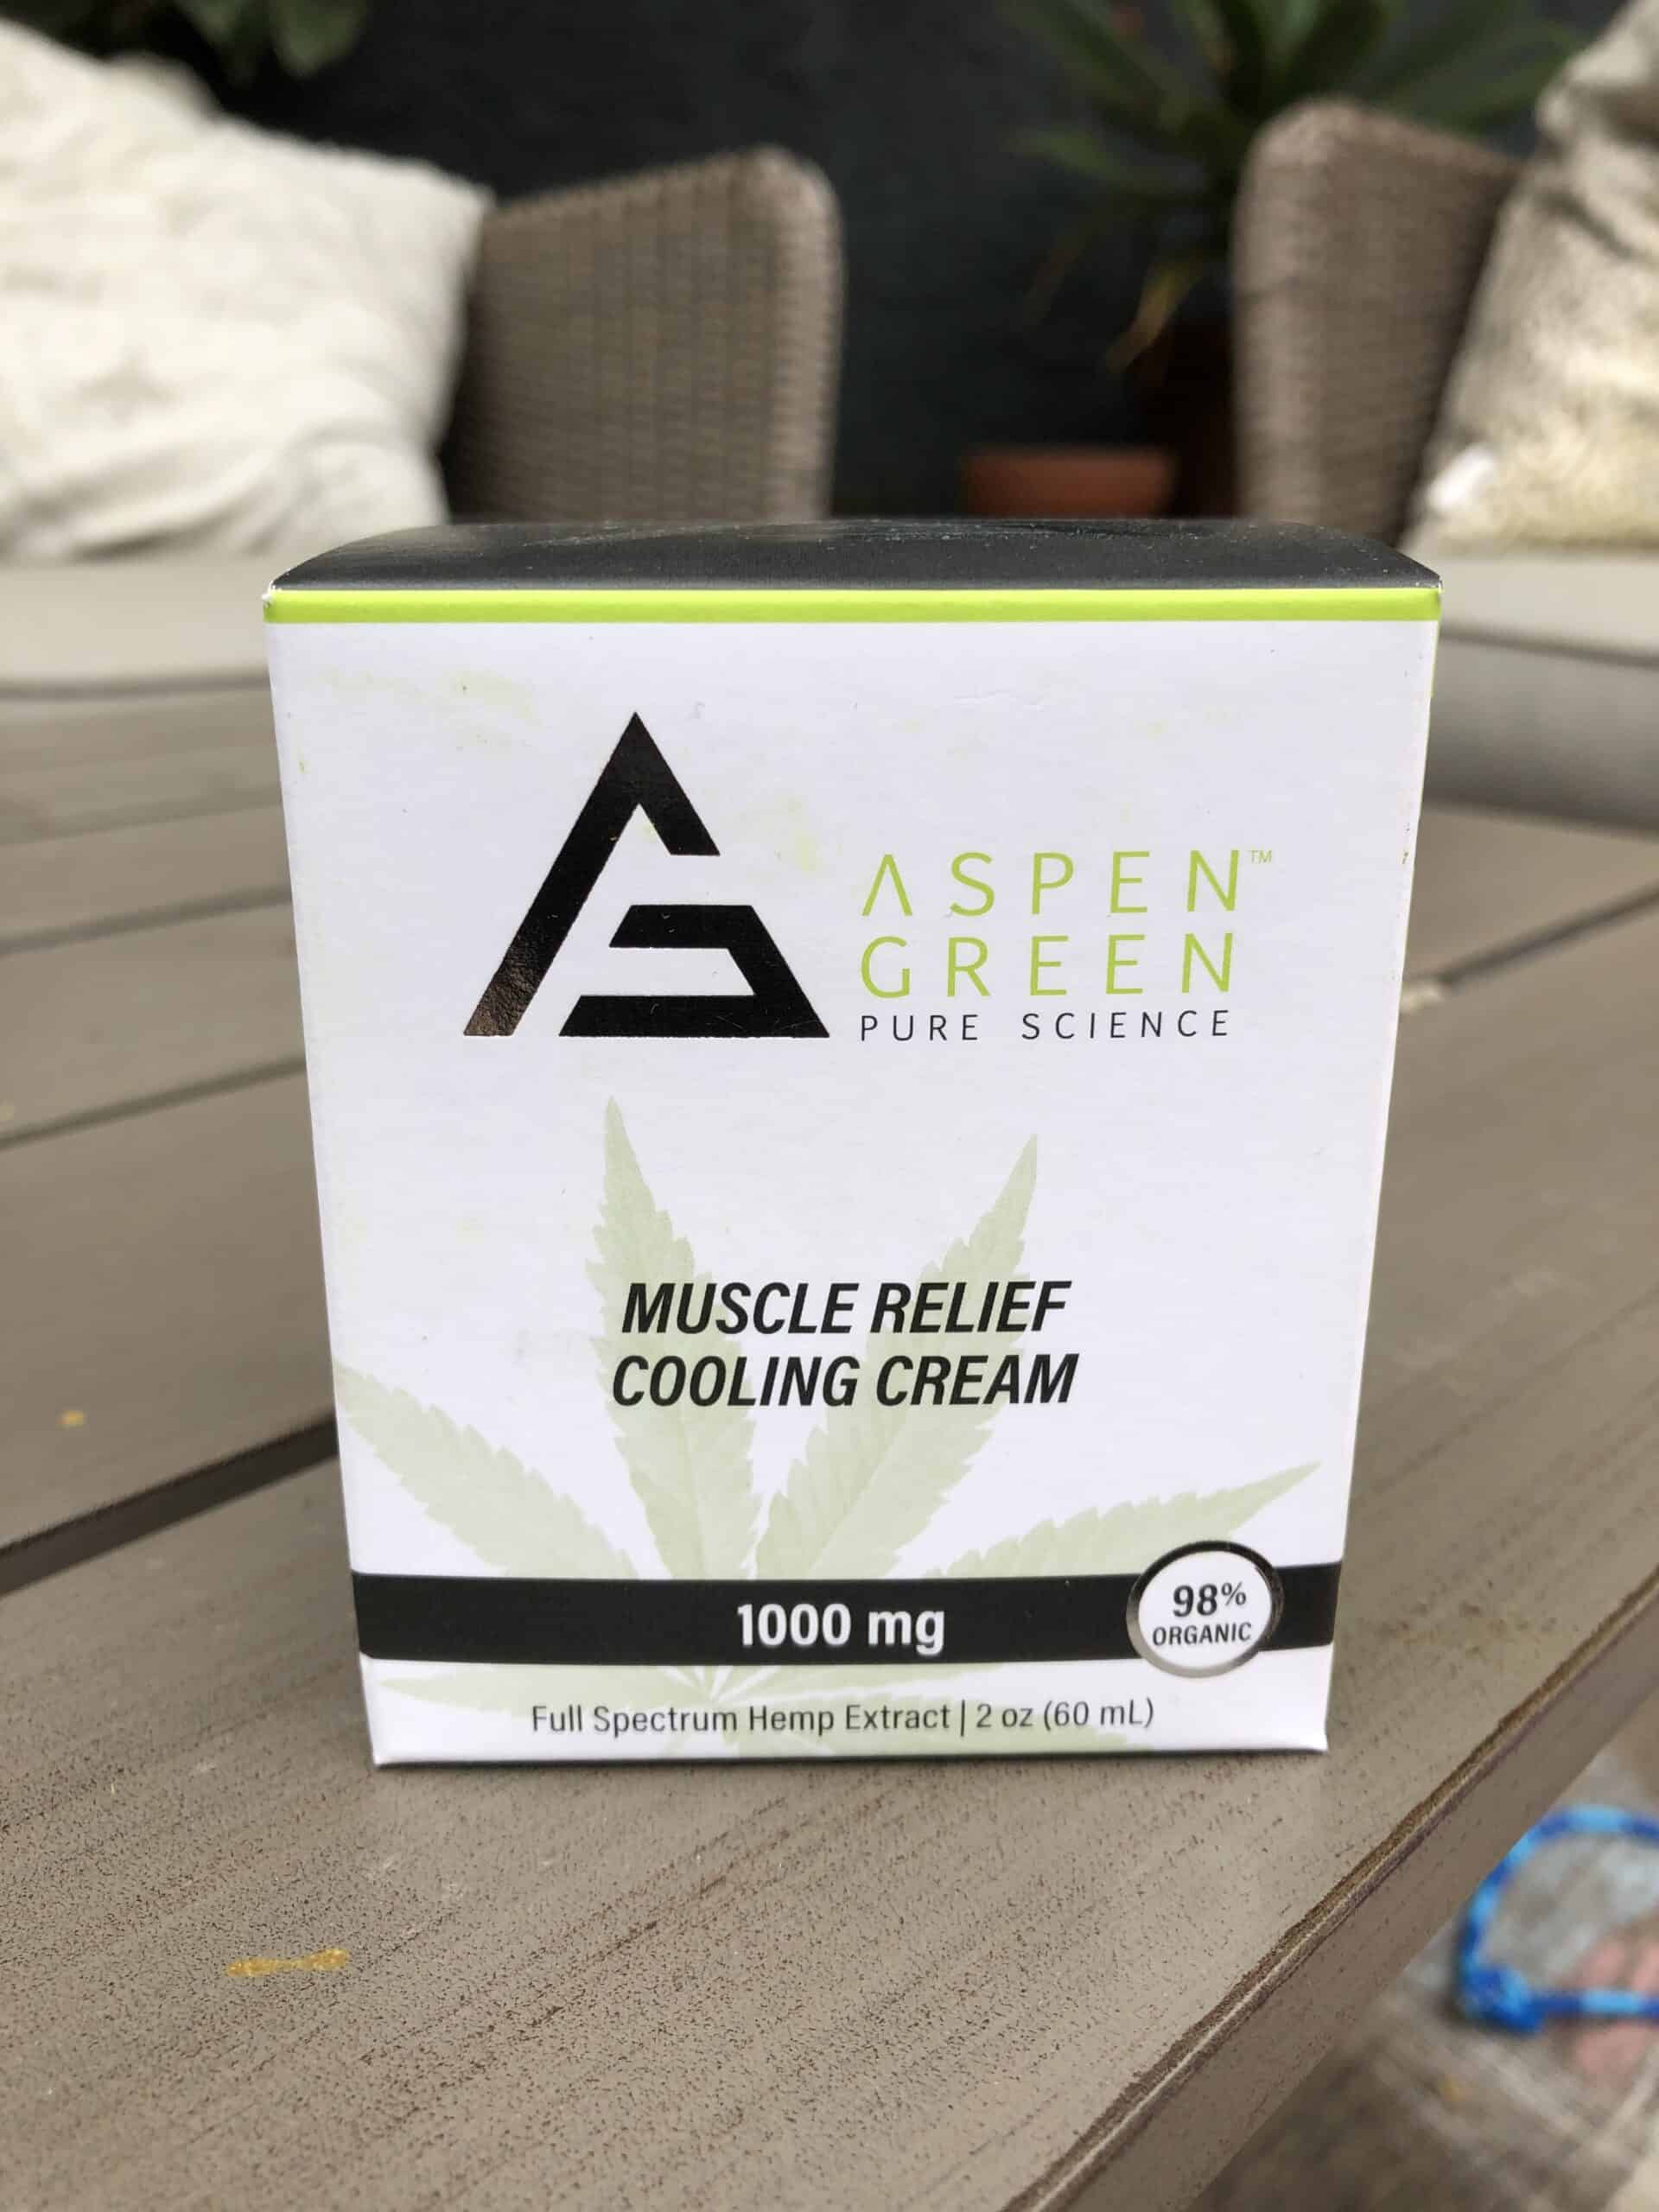 aspen green muscle relief cooling cream save on cannabis review